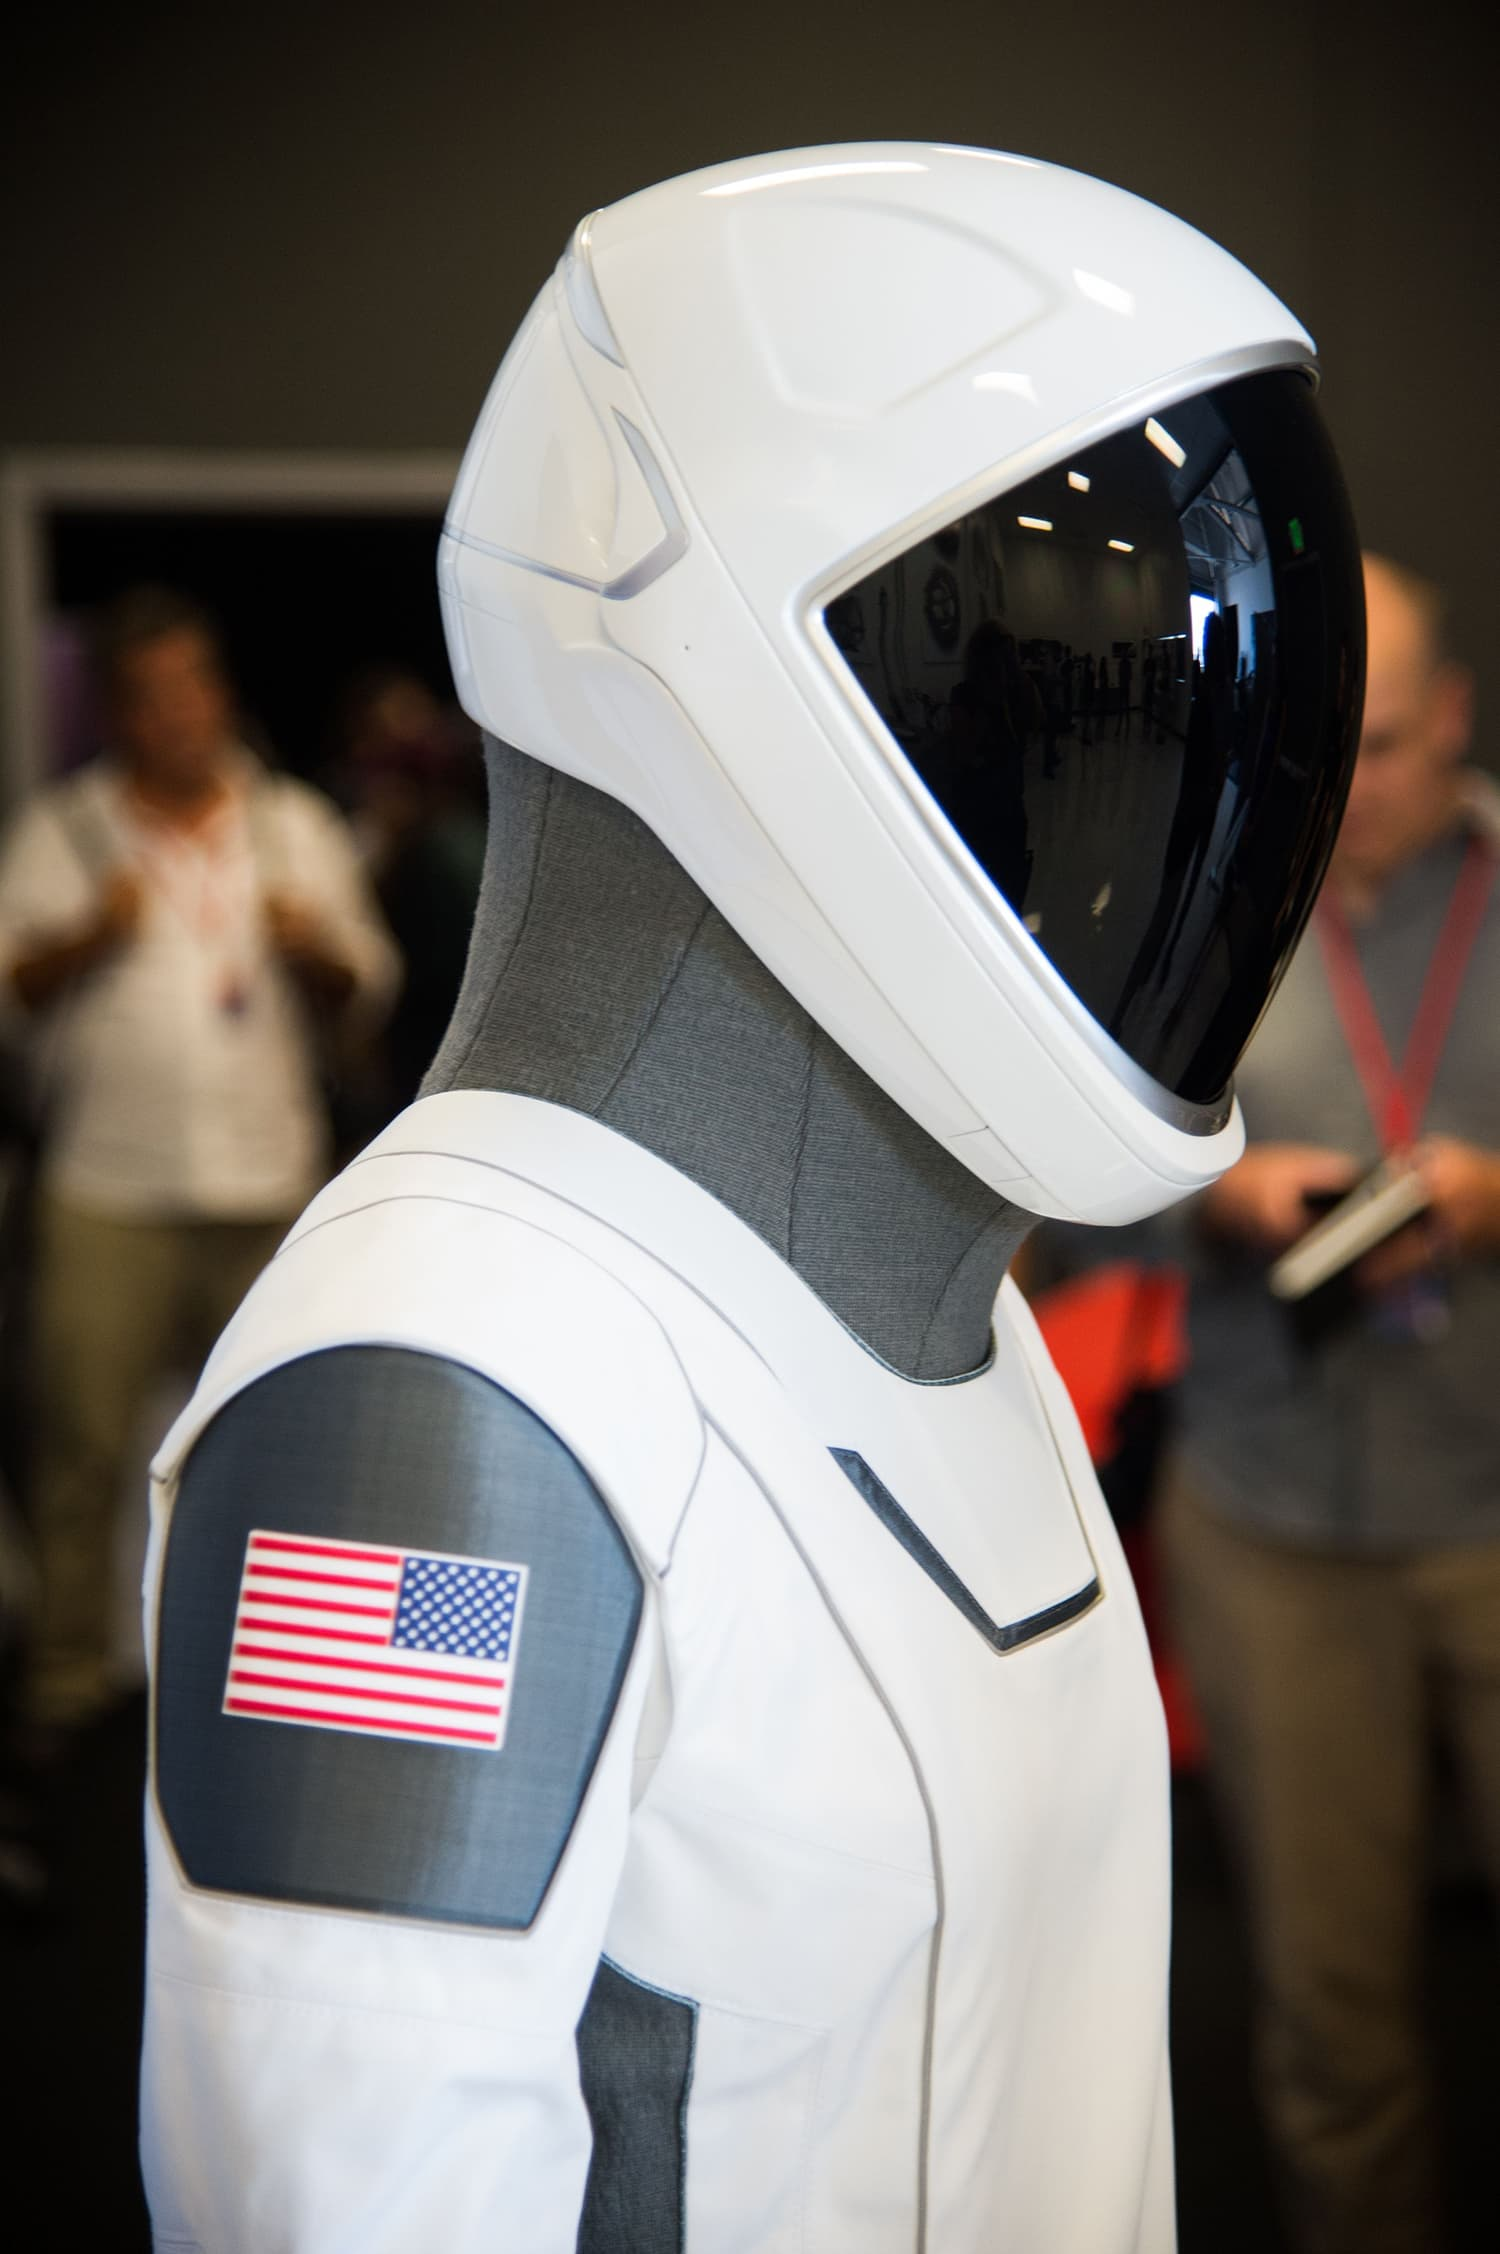 The SpaceX spacesuit to be worn by NASA astronauts aboard the SpaceX Crew Dragon capsule. —AFP